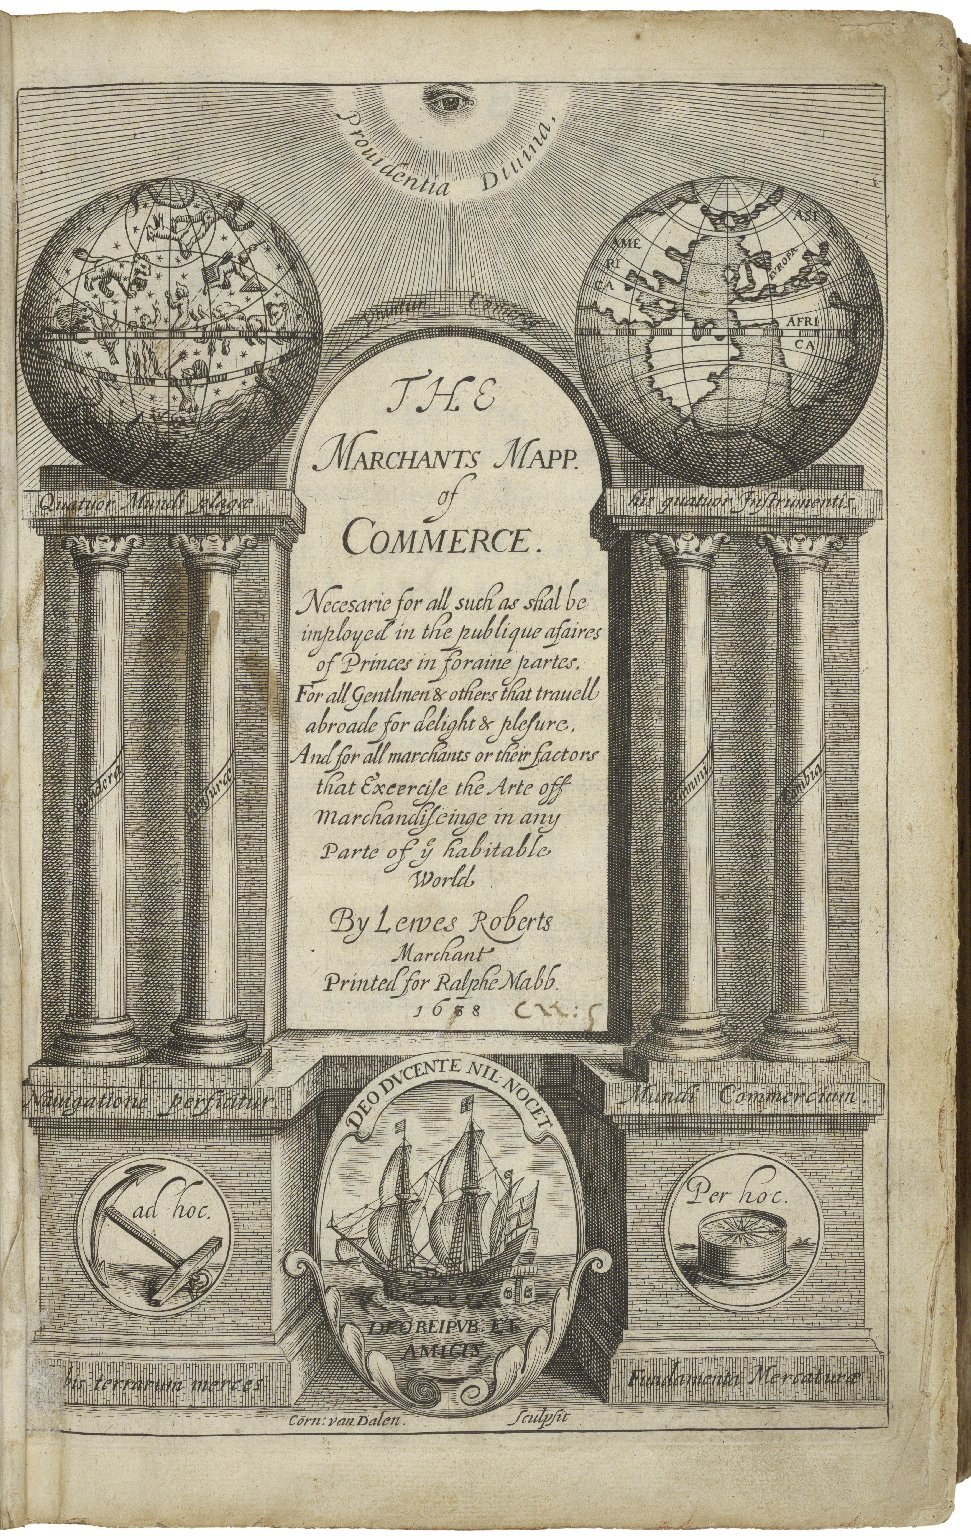 The merchants mappe of commerce : wherein the universall manner and matter of trade, is compendiously handled : the standerd and currant coines of sundry princes observed : the reall and imaginary coines of accompts and exchanges expressed : the naturall